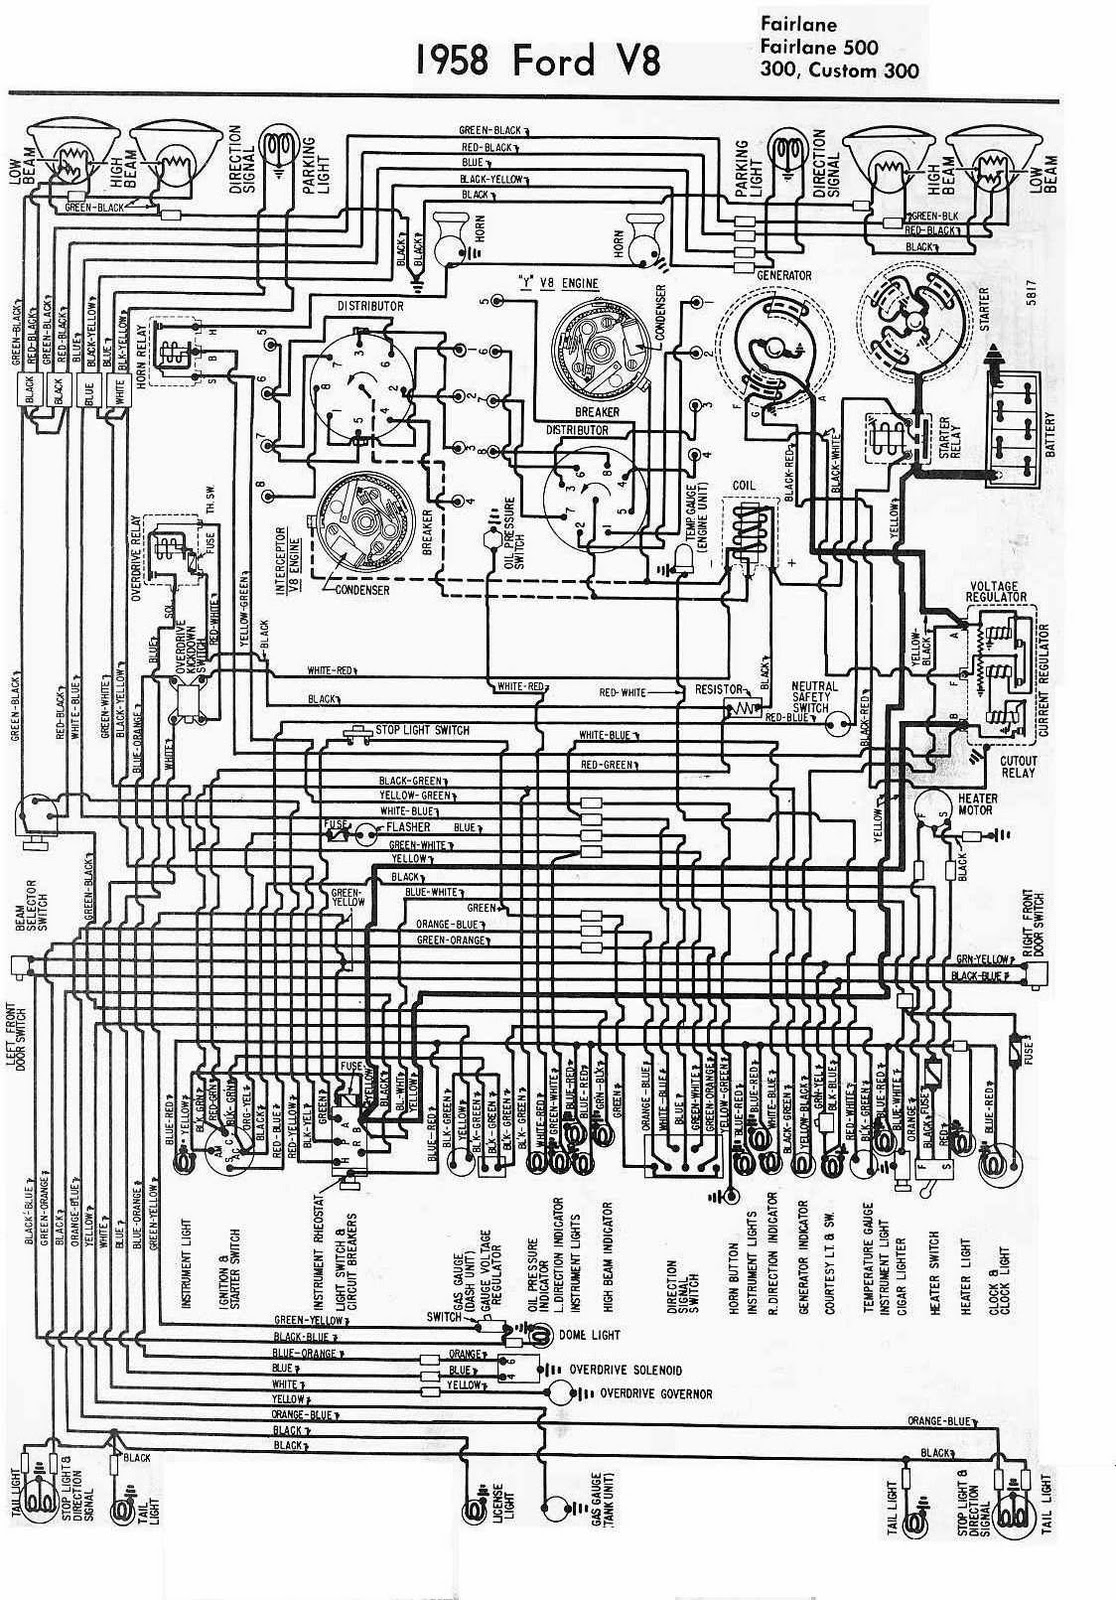 1968 Ford F100 Ignition Wiring Diagram | Wiring Liry  Ford Wiring Diagram on wiring harness diagram, 1940 buick wiring diagram, 2014 dodge 2500 wiring diagram, 1961 thunderbird wiring diagram, 1955 ford electrical system, 1955 ford exhaust system, 1957 wiring diagram, 1955 ford wheels, 1941 oldsmobile wiring diagram, 1950 buick wiring diagram, 1949 cadillac wiring diagram, 1955 ford accessories, 1953 dodge wiring diagram, 1964 mustang wiring diagram, 2012 dodge avenger wiring diagram, 1955 ford chassis, 1954 dodge wiring diagram, 1956 thunderbird wiring diagram, tractor ignition switch wiring diagram, 1953 buick wiring diagram,